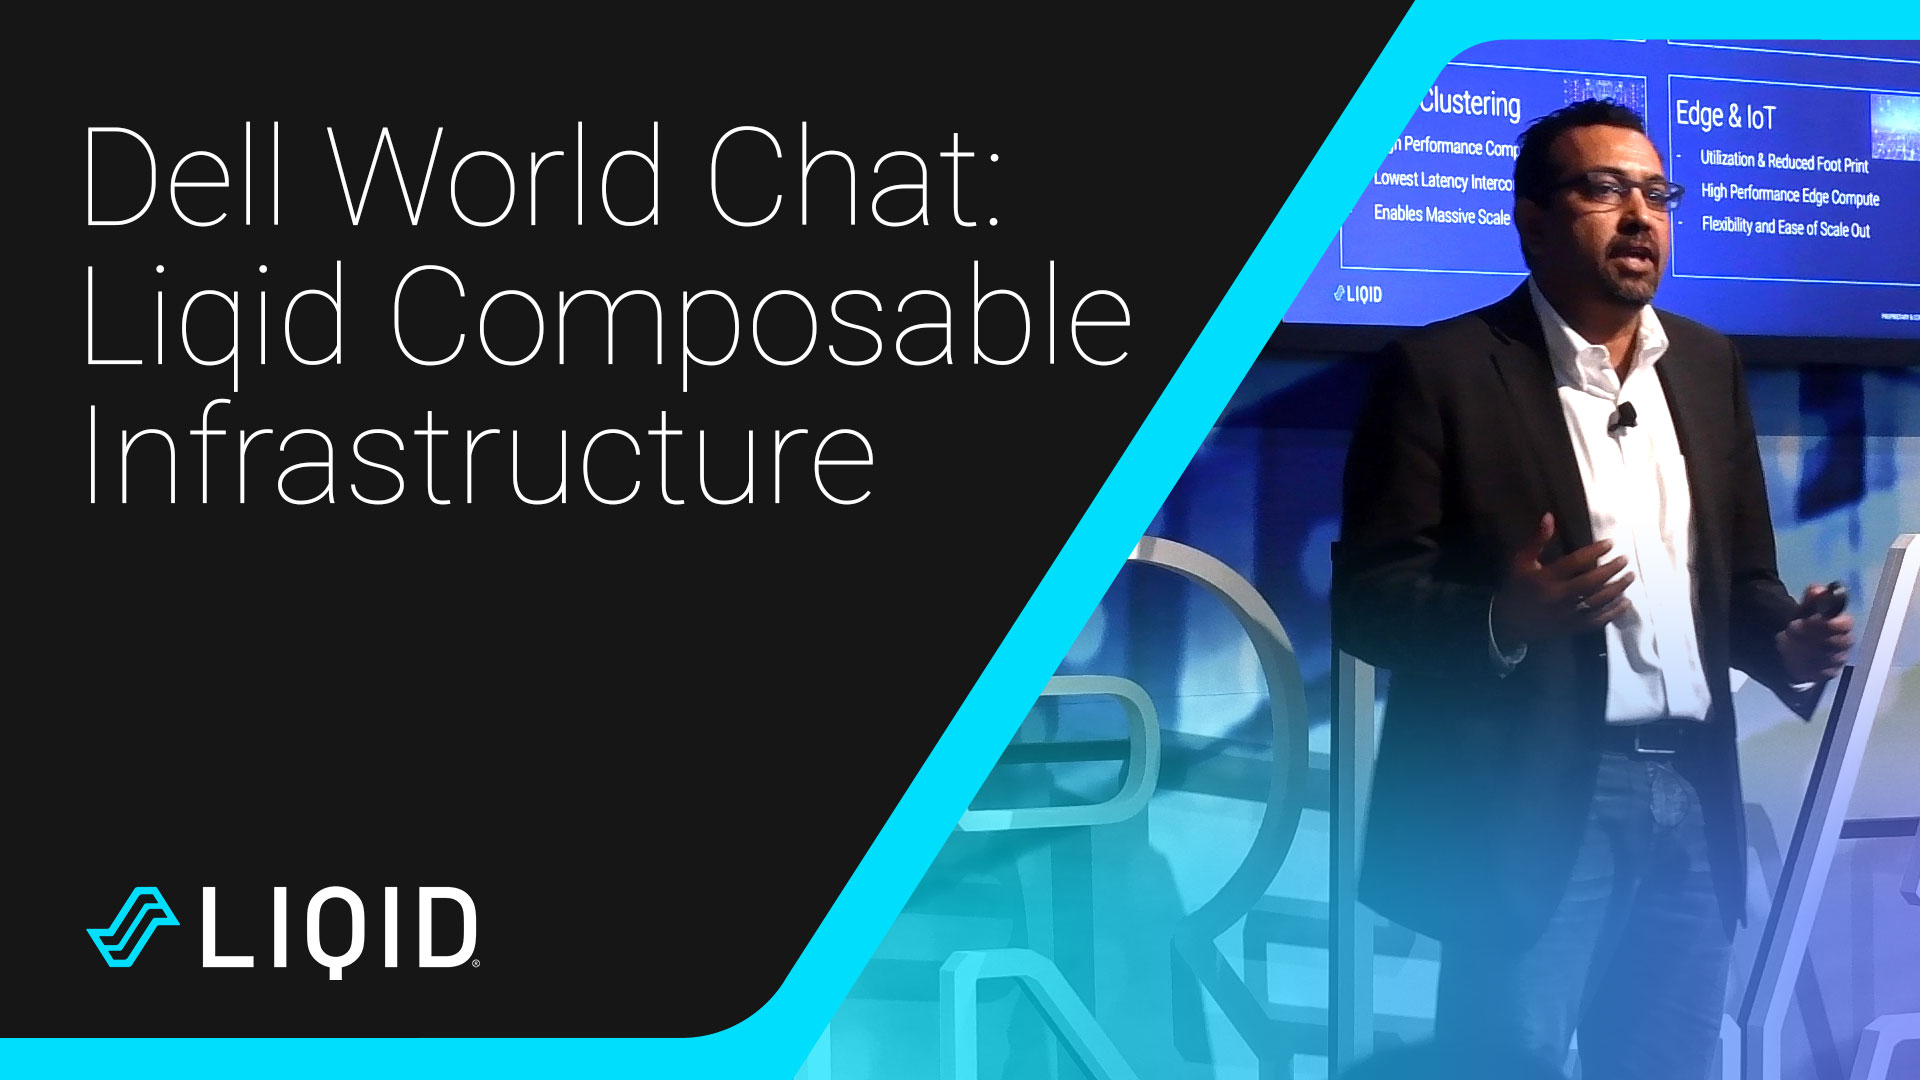 Liqid, the leader in composable infrastructure, at Dell World Chat 2019